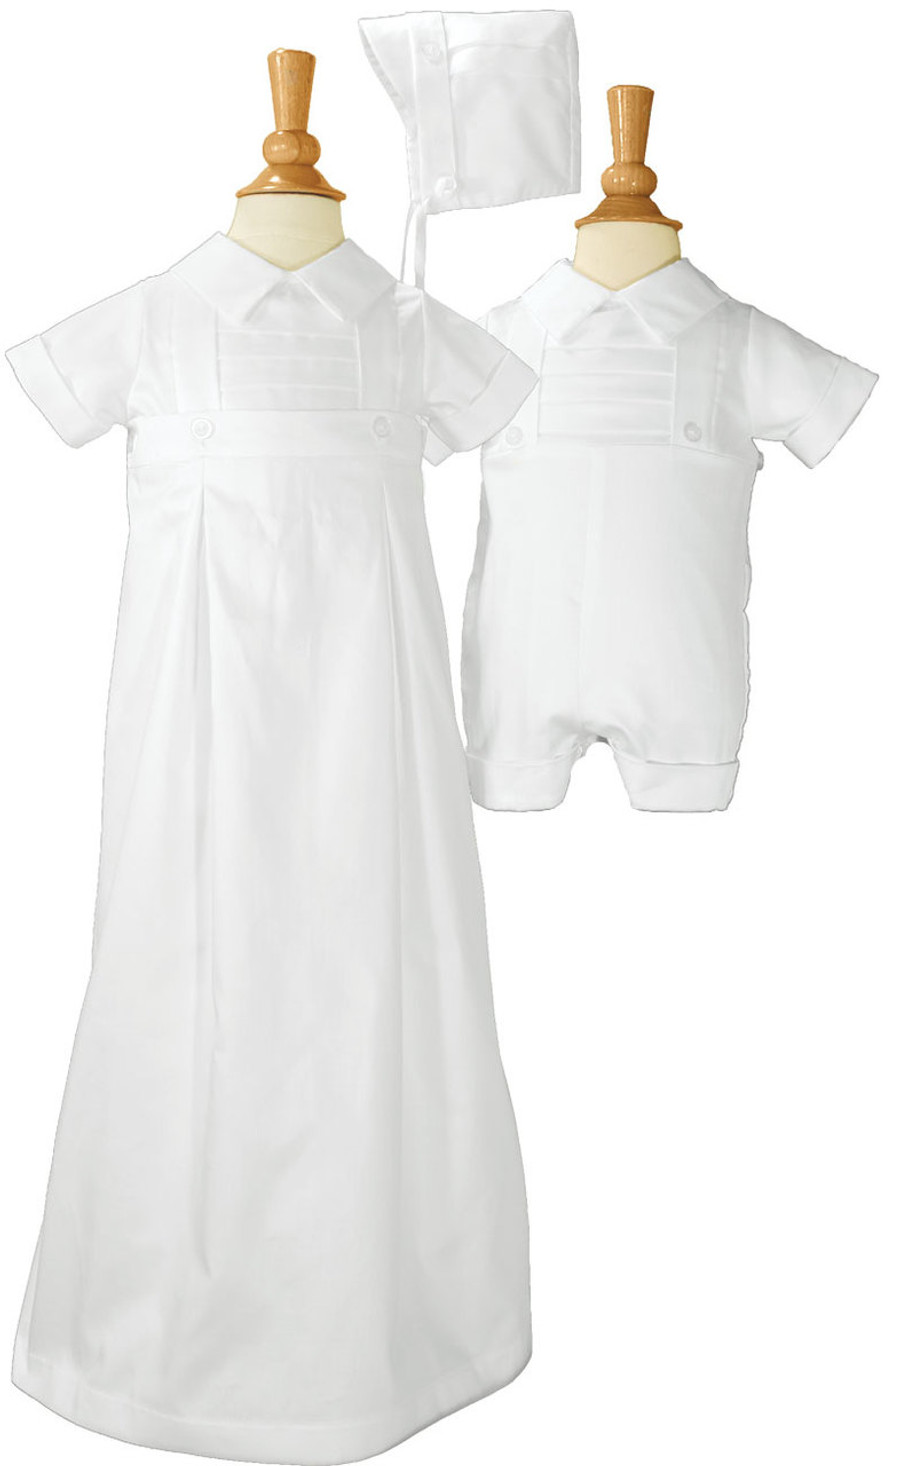 Boys cotton convertible christening baptism set with hat.